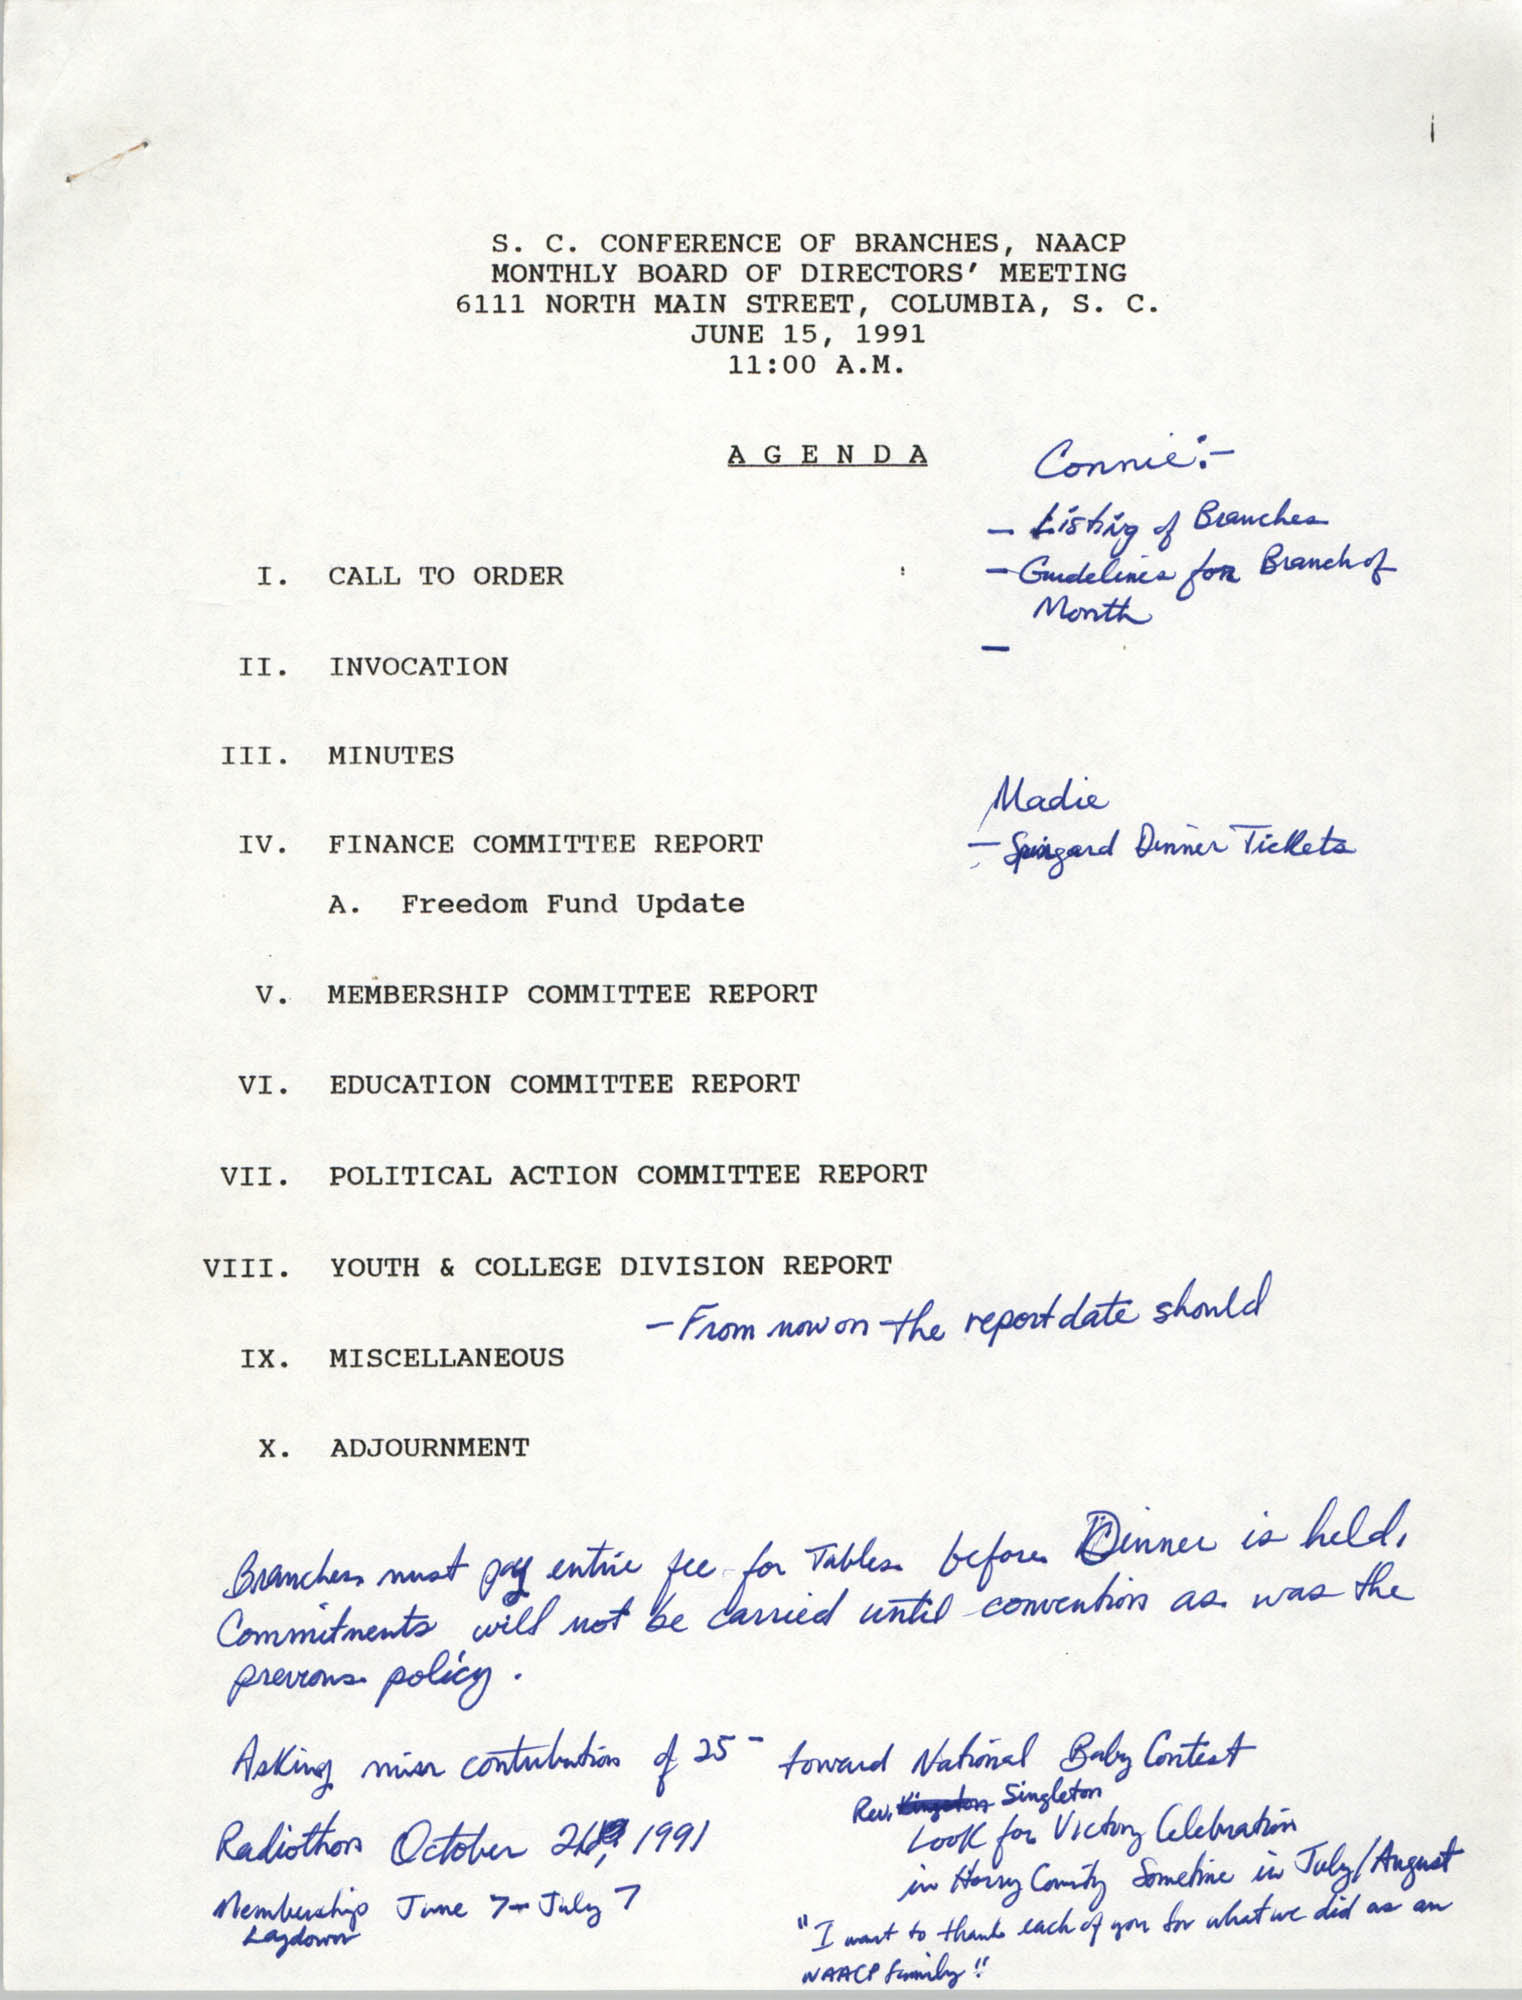 Agenda, South Carolina Conference of Branches of the NAACP, June 15, 1991